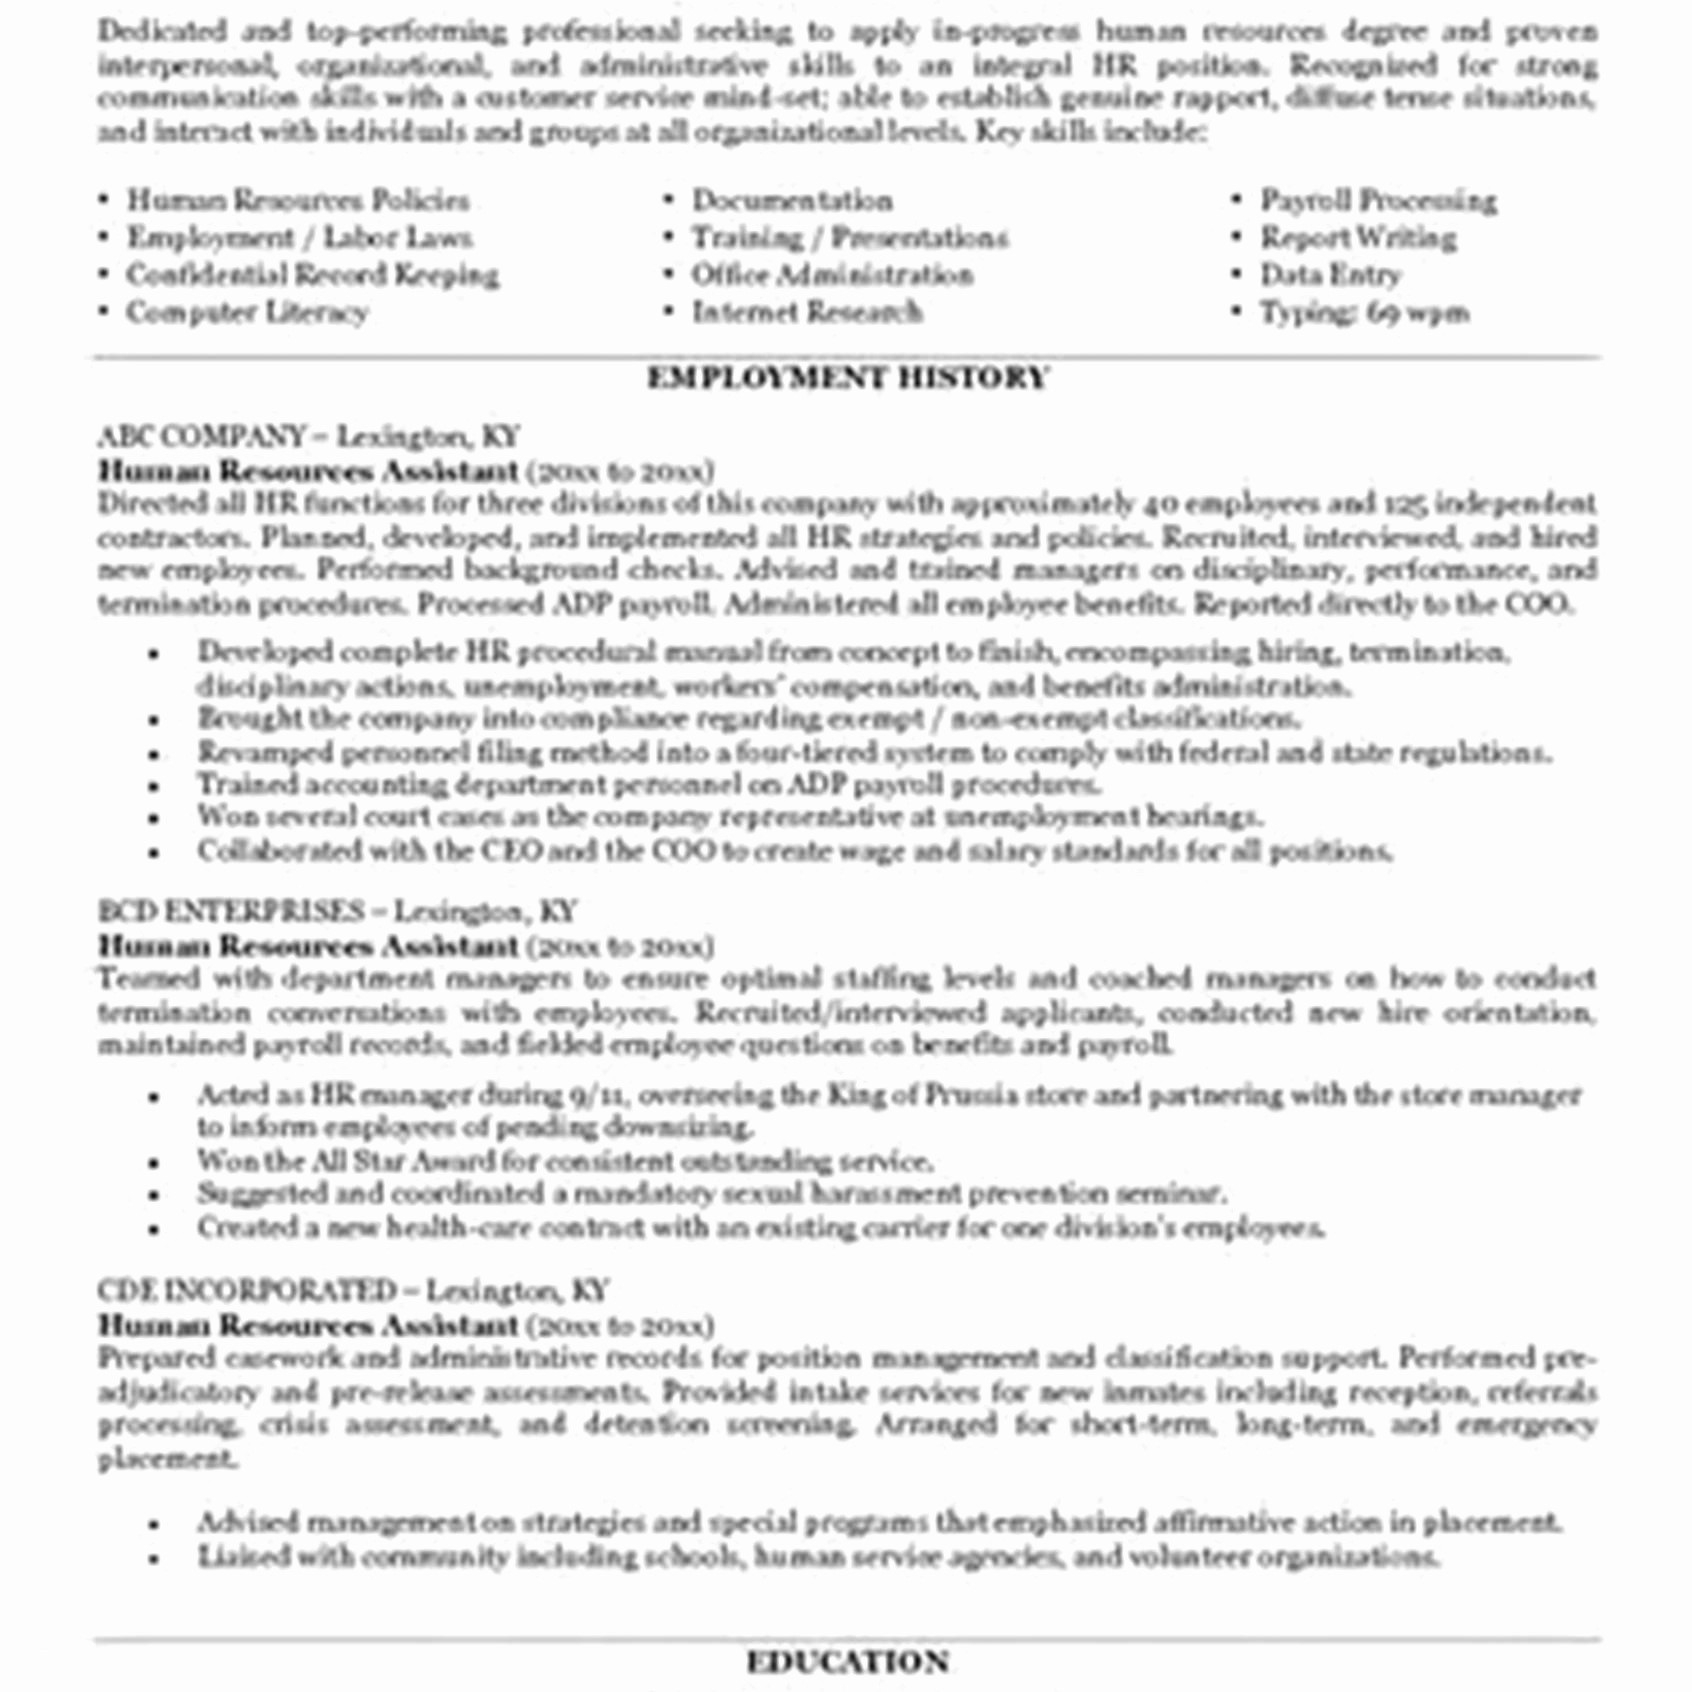 human resources coordinator resume Collection-Human Resources Assistant Resume Samples Save Examples Human Resources Resumes Elegant Human Resource Assistant 6-n